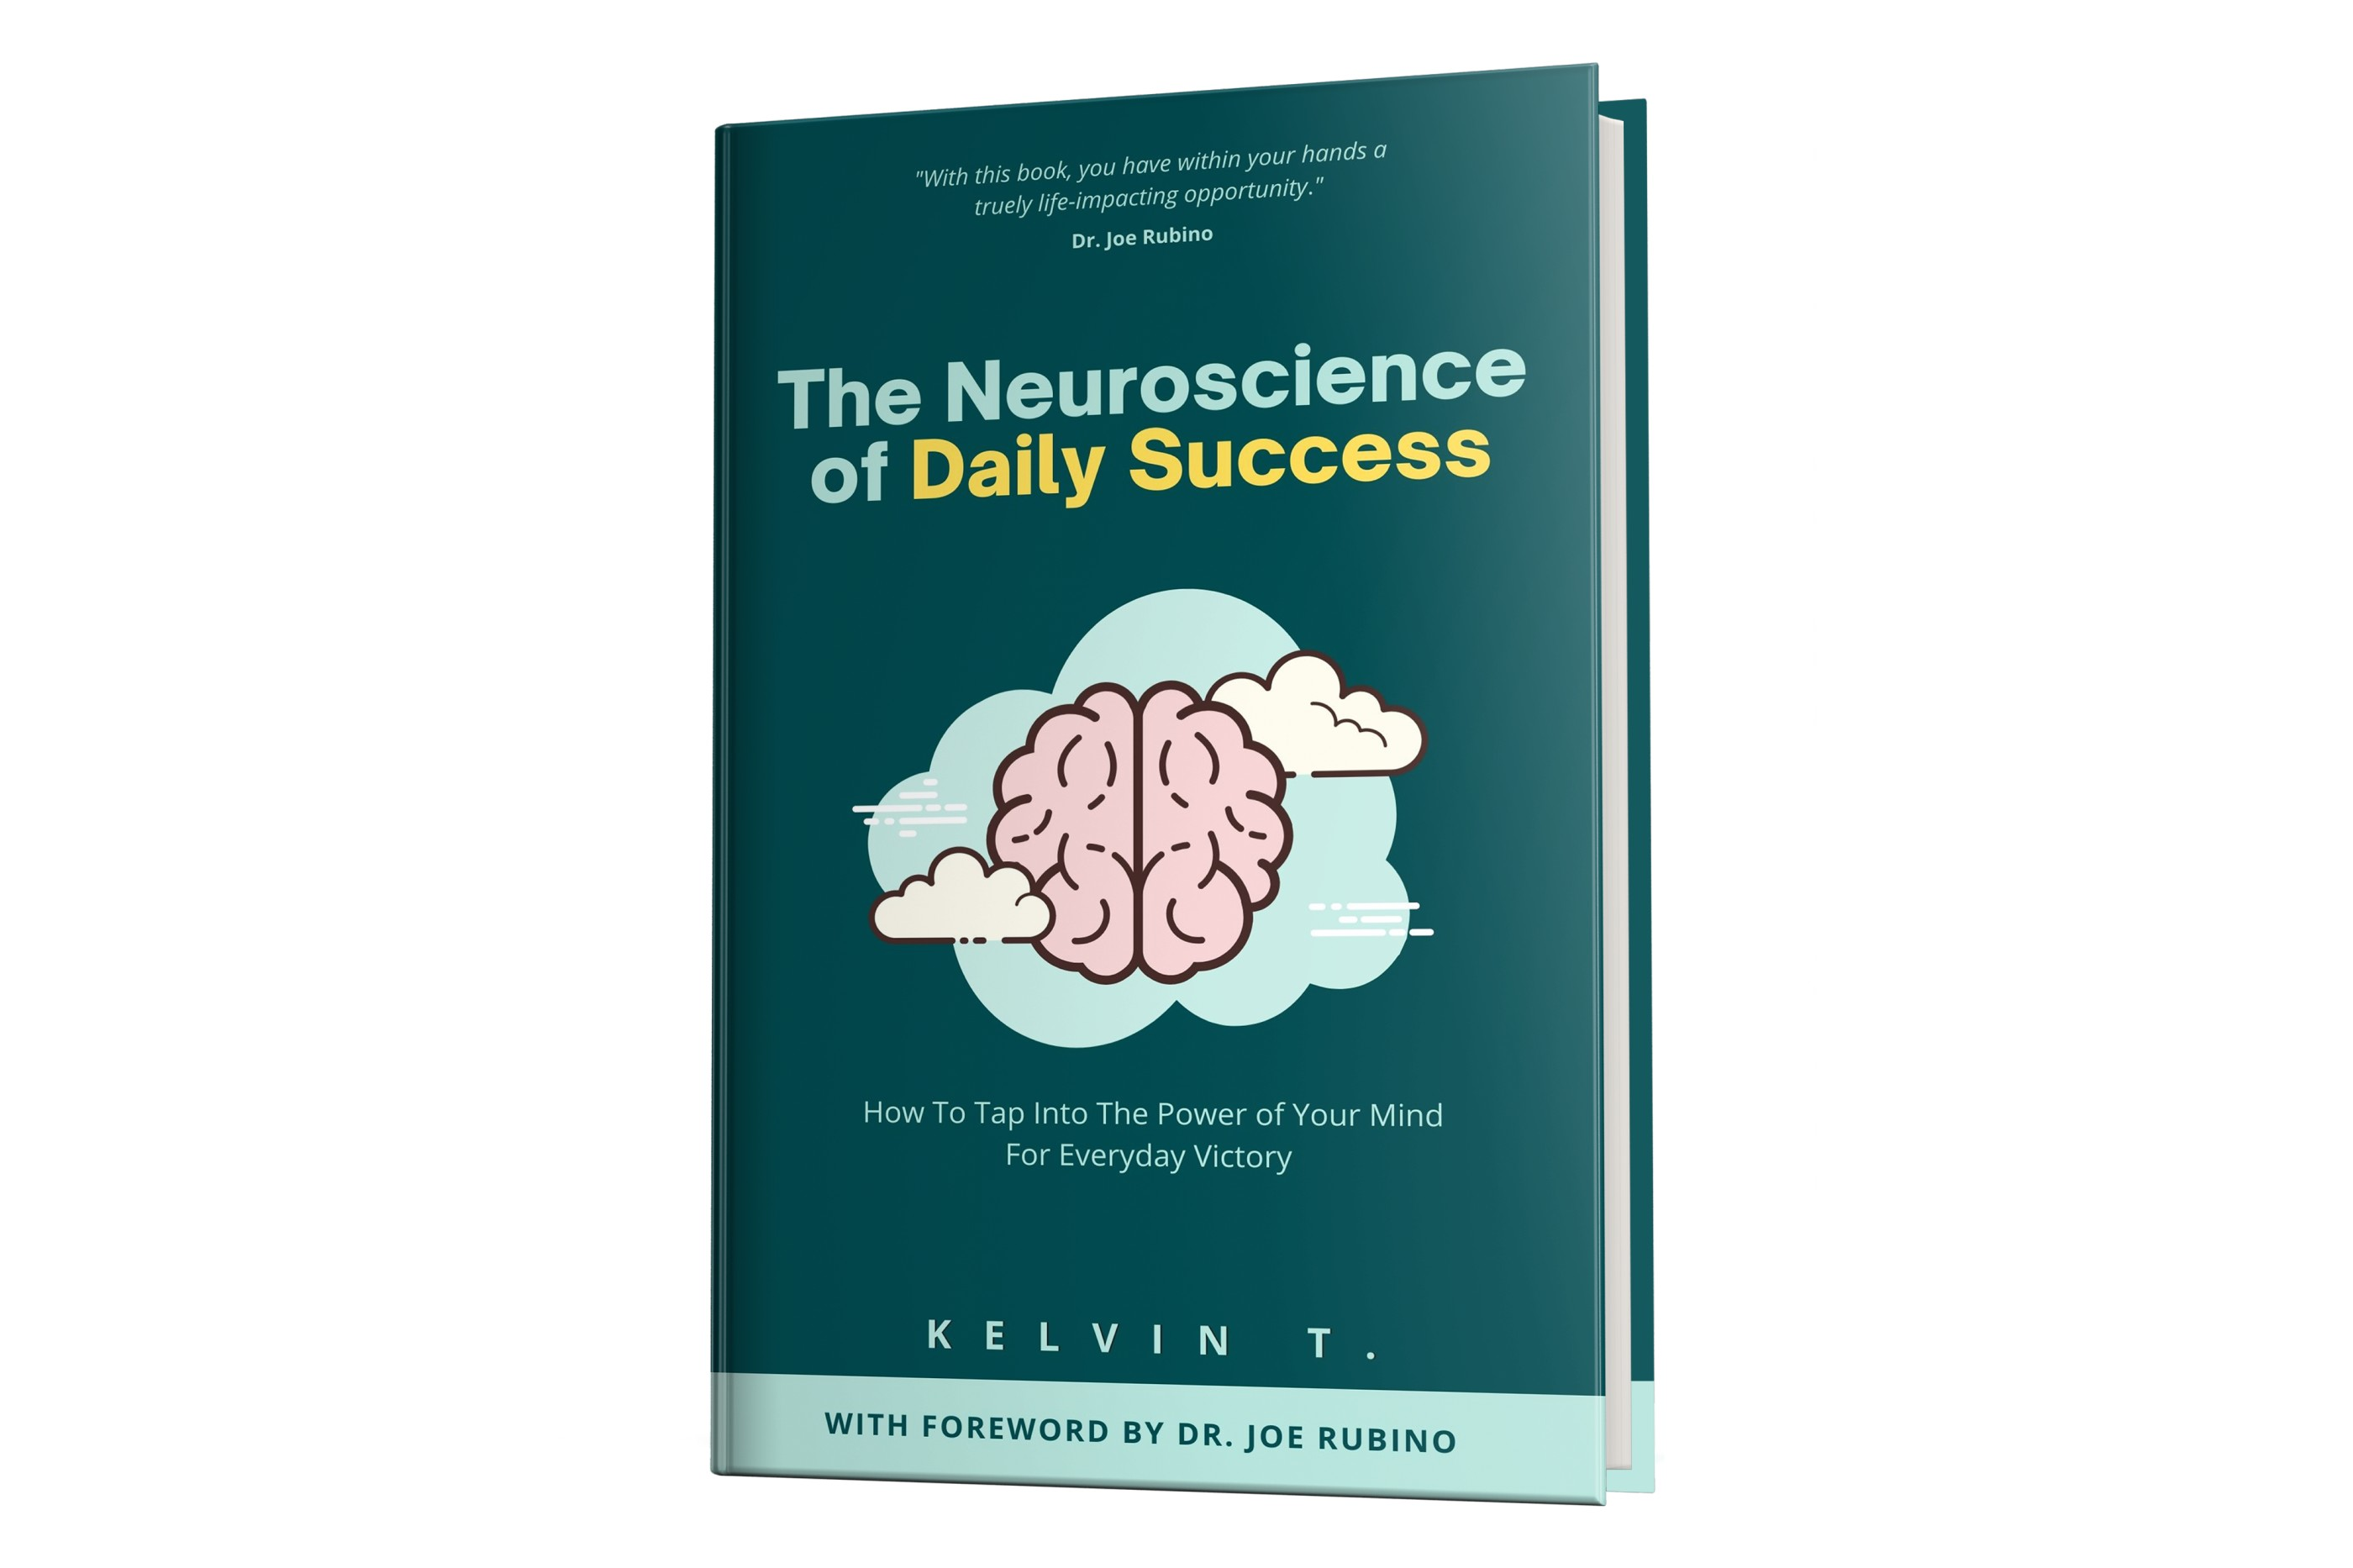 The Neuroscience of Daily Success